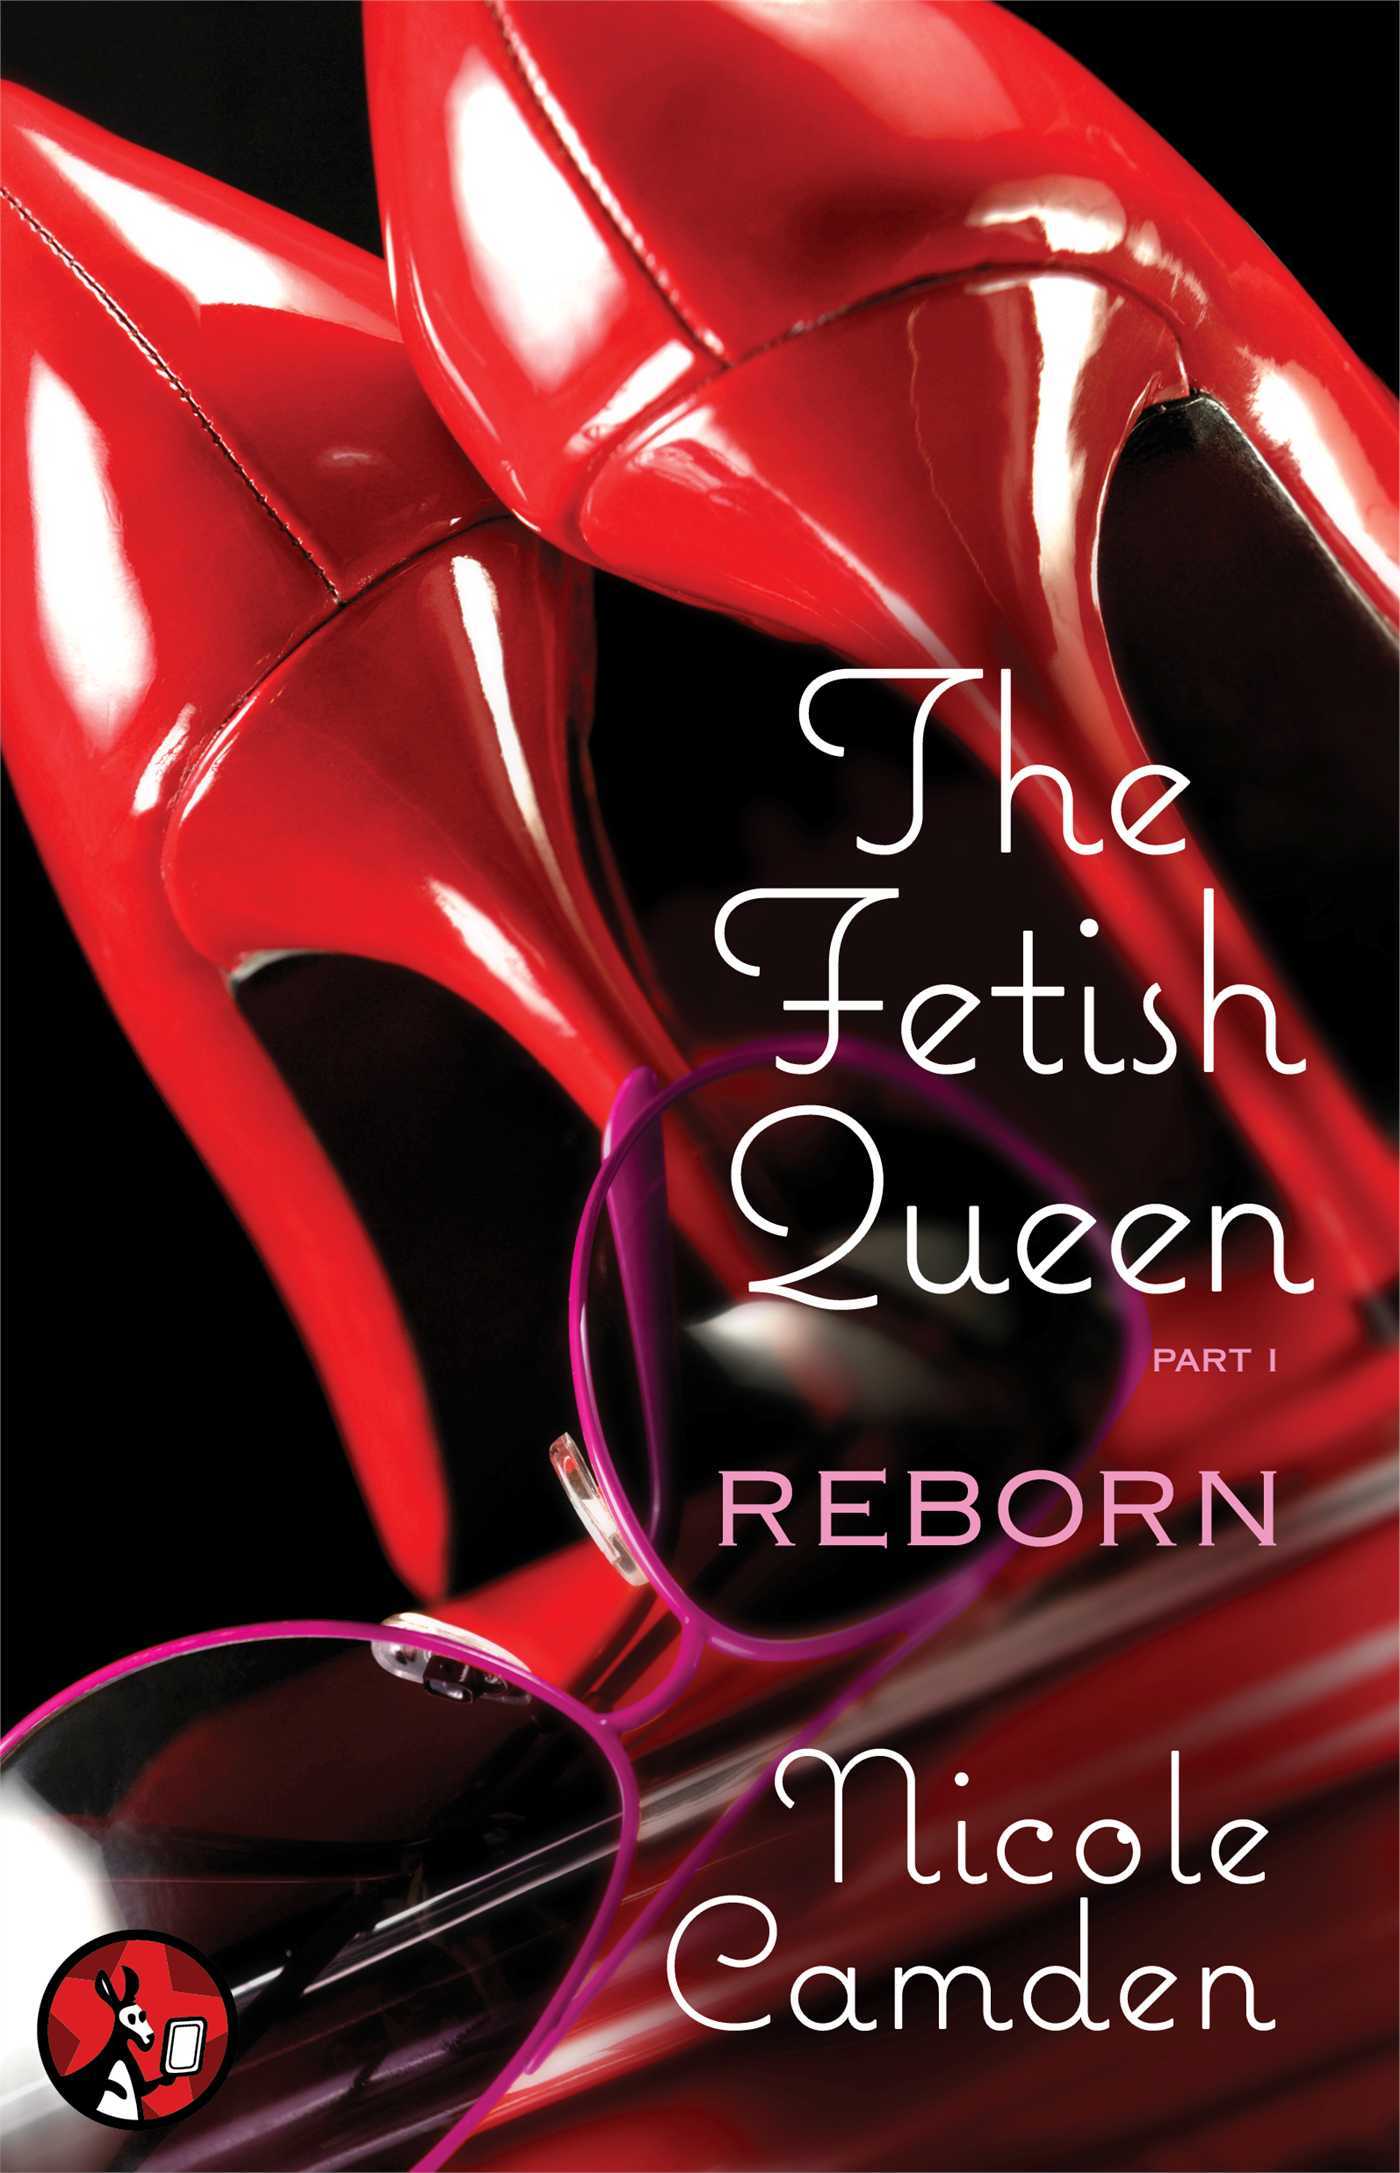 Nicole camden official publisher page simon schuster book cover image jpg the fetish queen part one reborn ebook 9781476727899 fandeluxe PDF